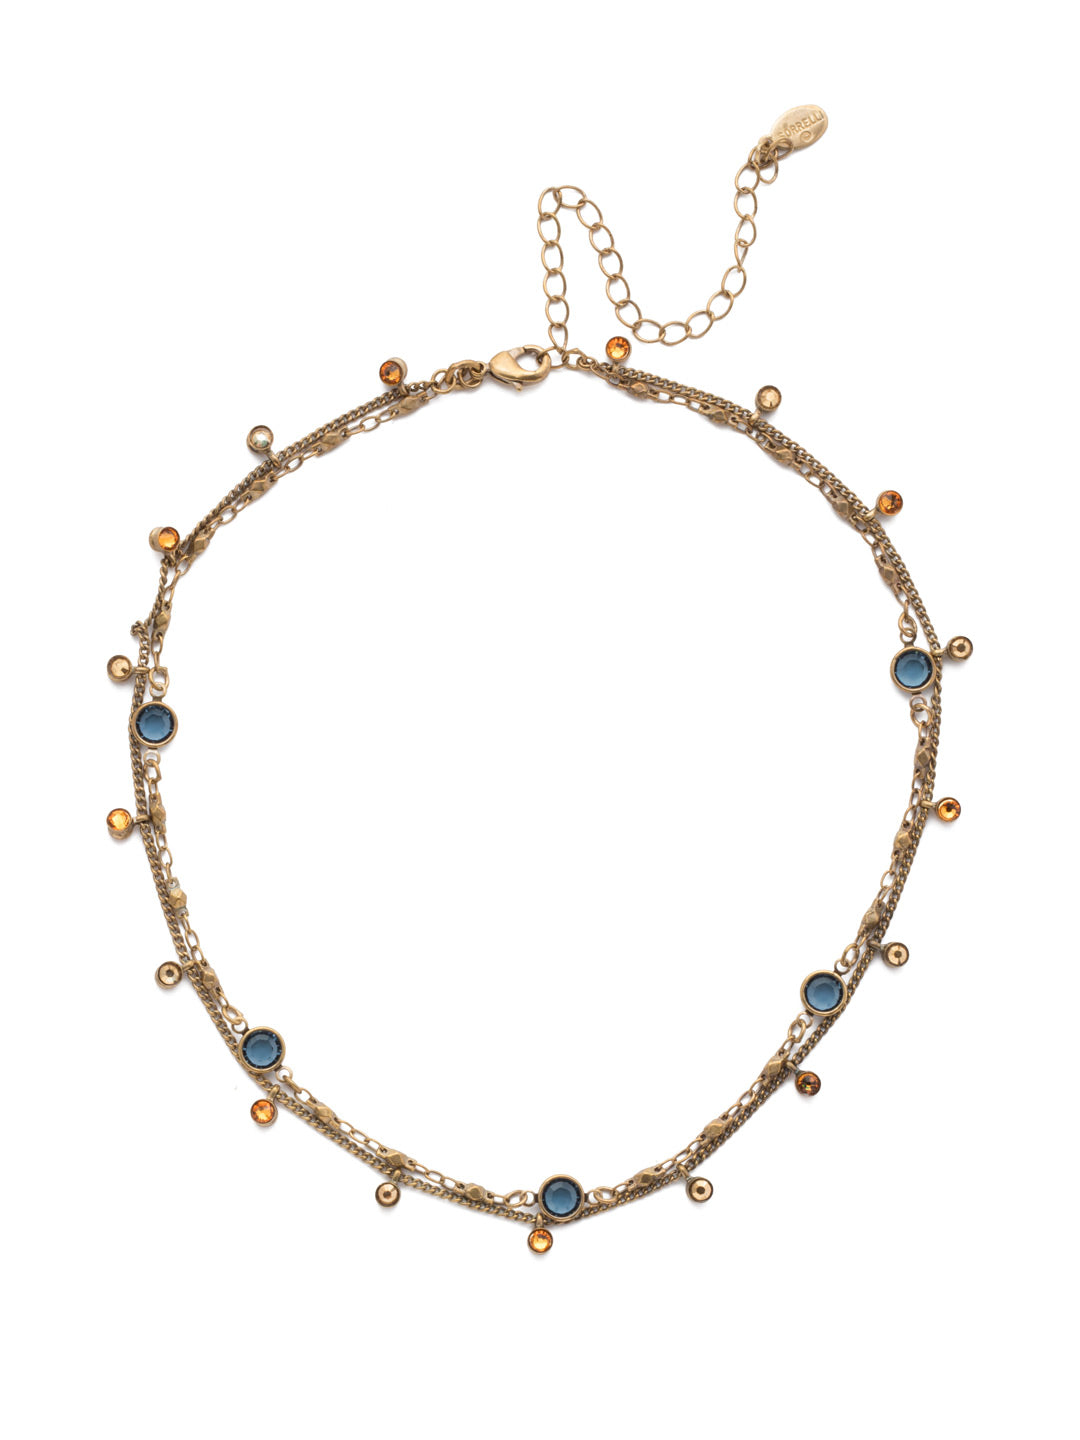 Dewdrop Layered Necklace - NEK36AGLNA